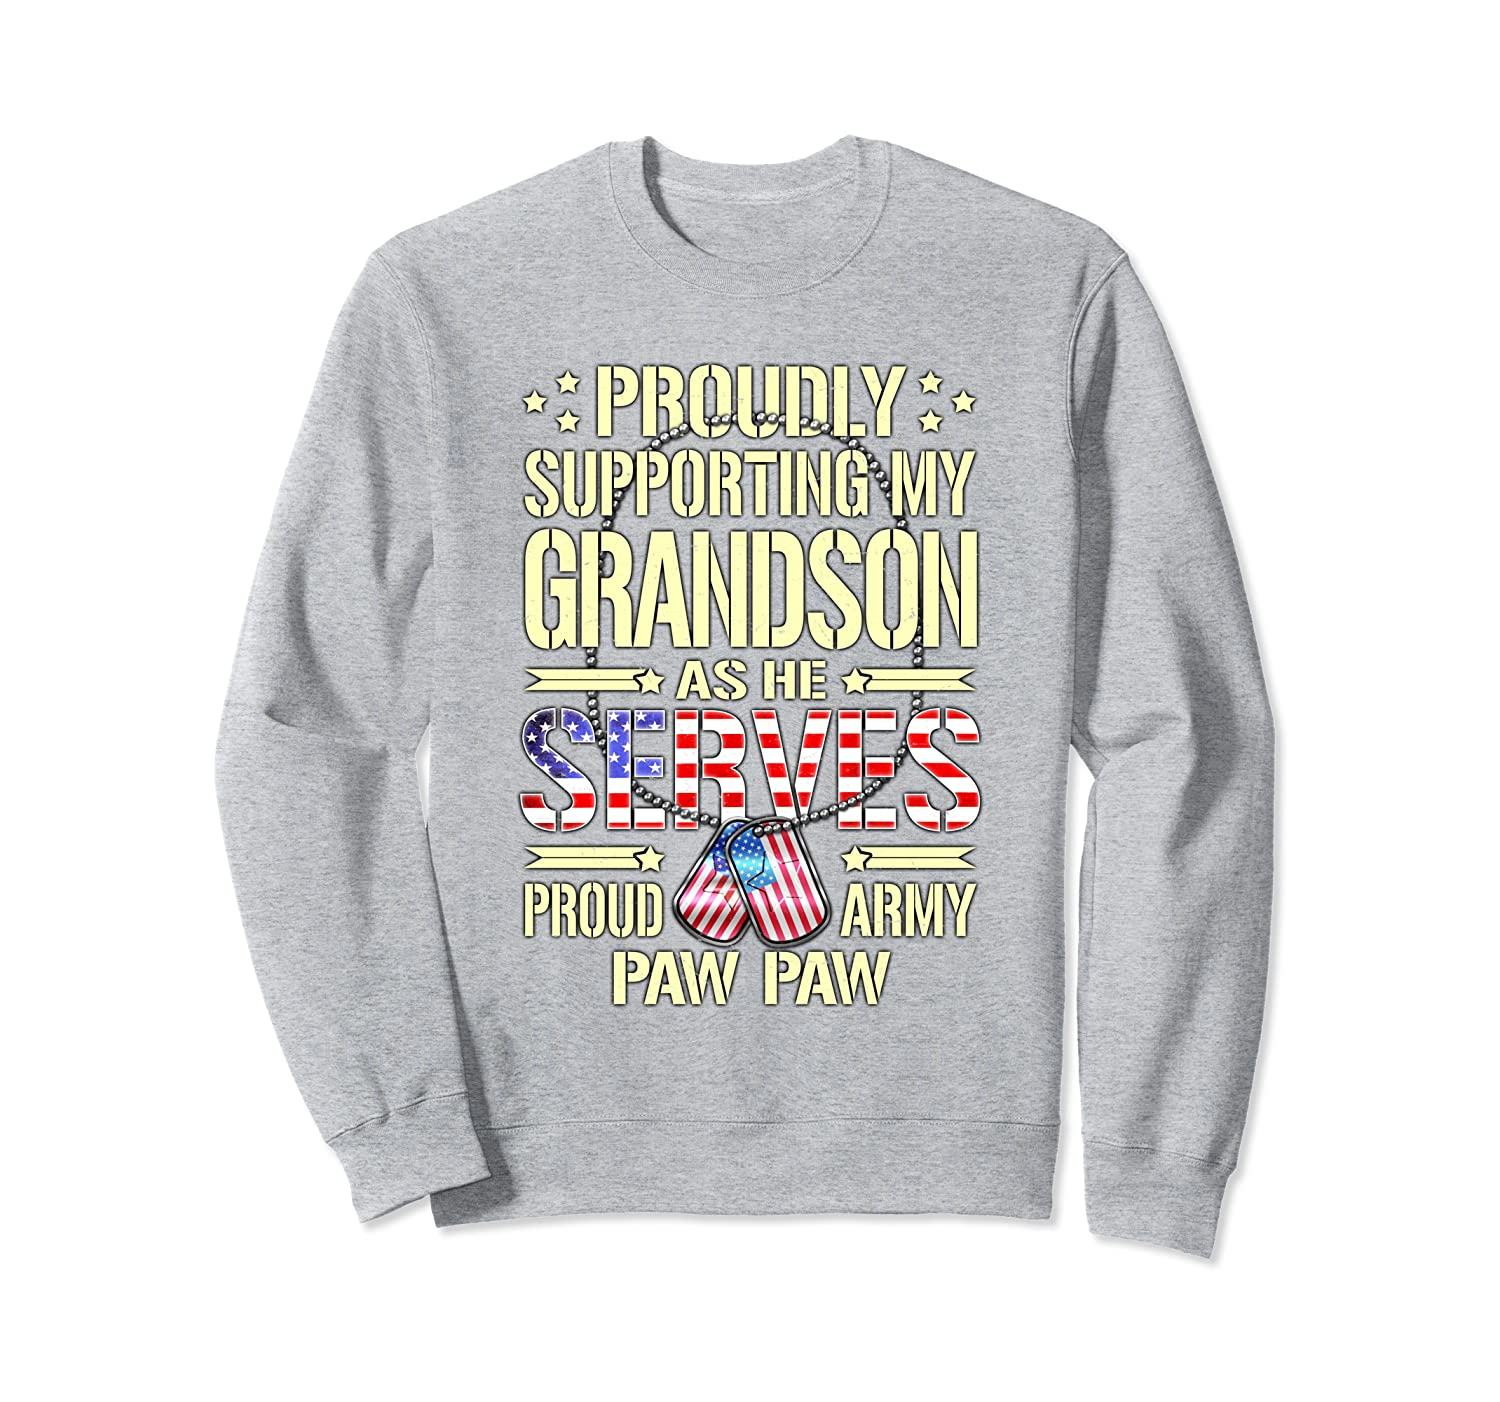 Support My Grandson As He Serves – Proud Army Paw Paw Gifts Sweatshirt